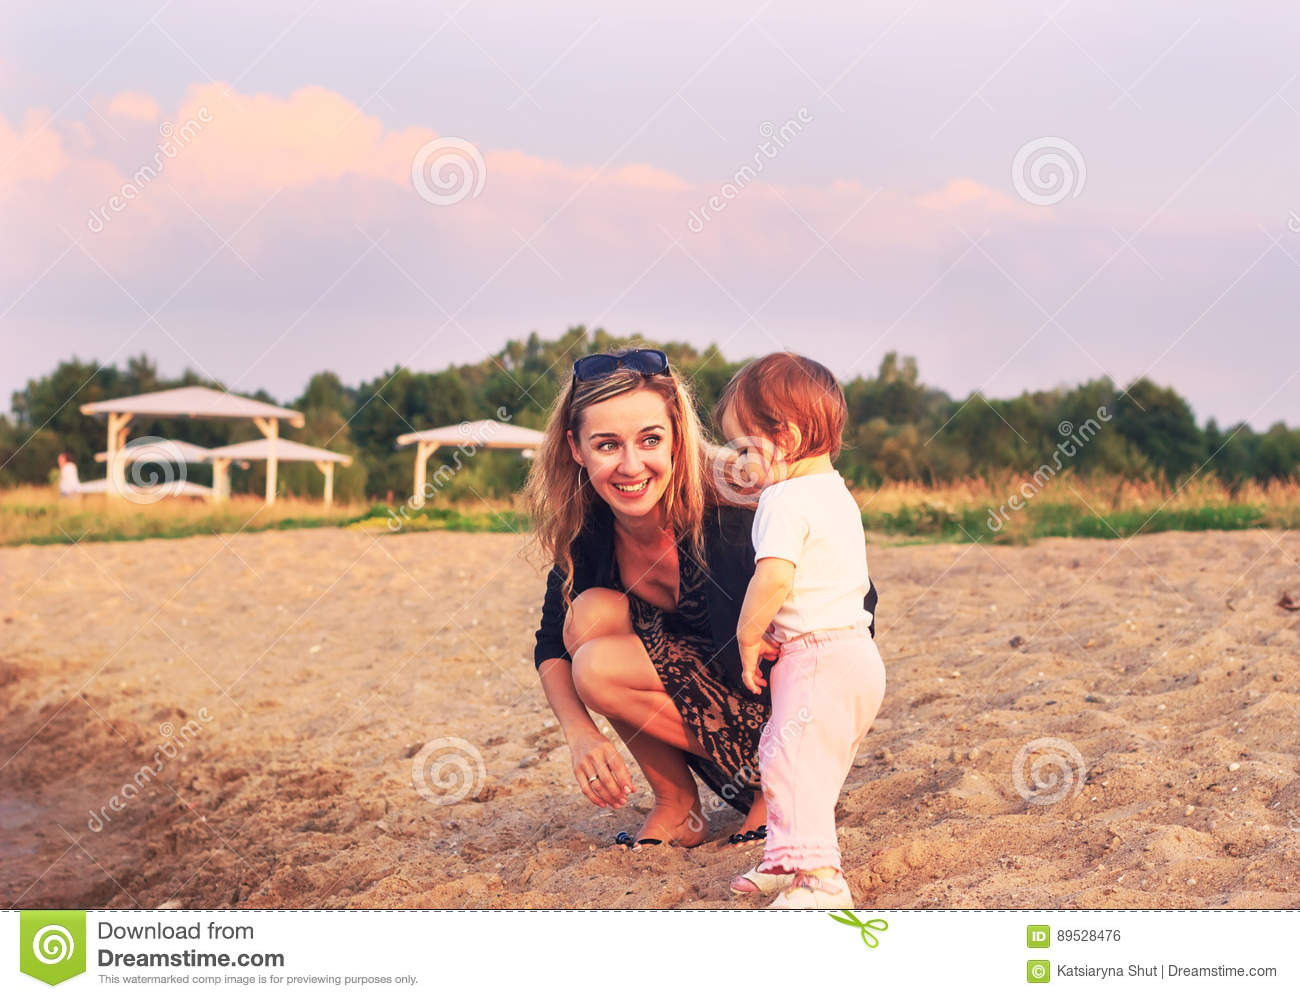 Mother and child playing on the beach at the sunset time. Concept of friendly family.